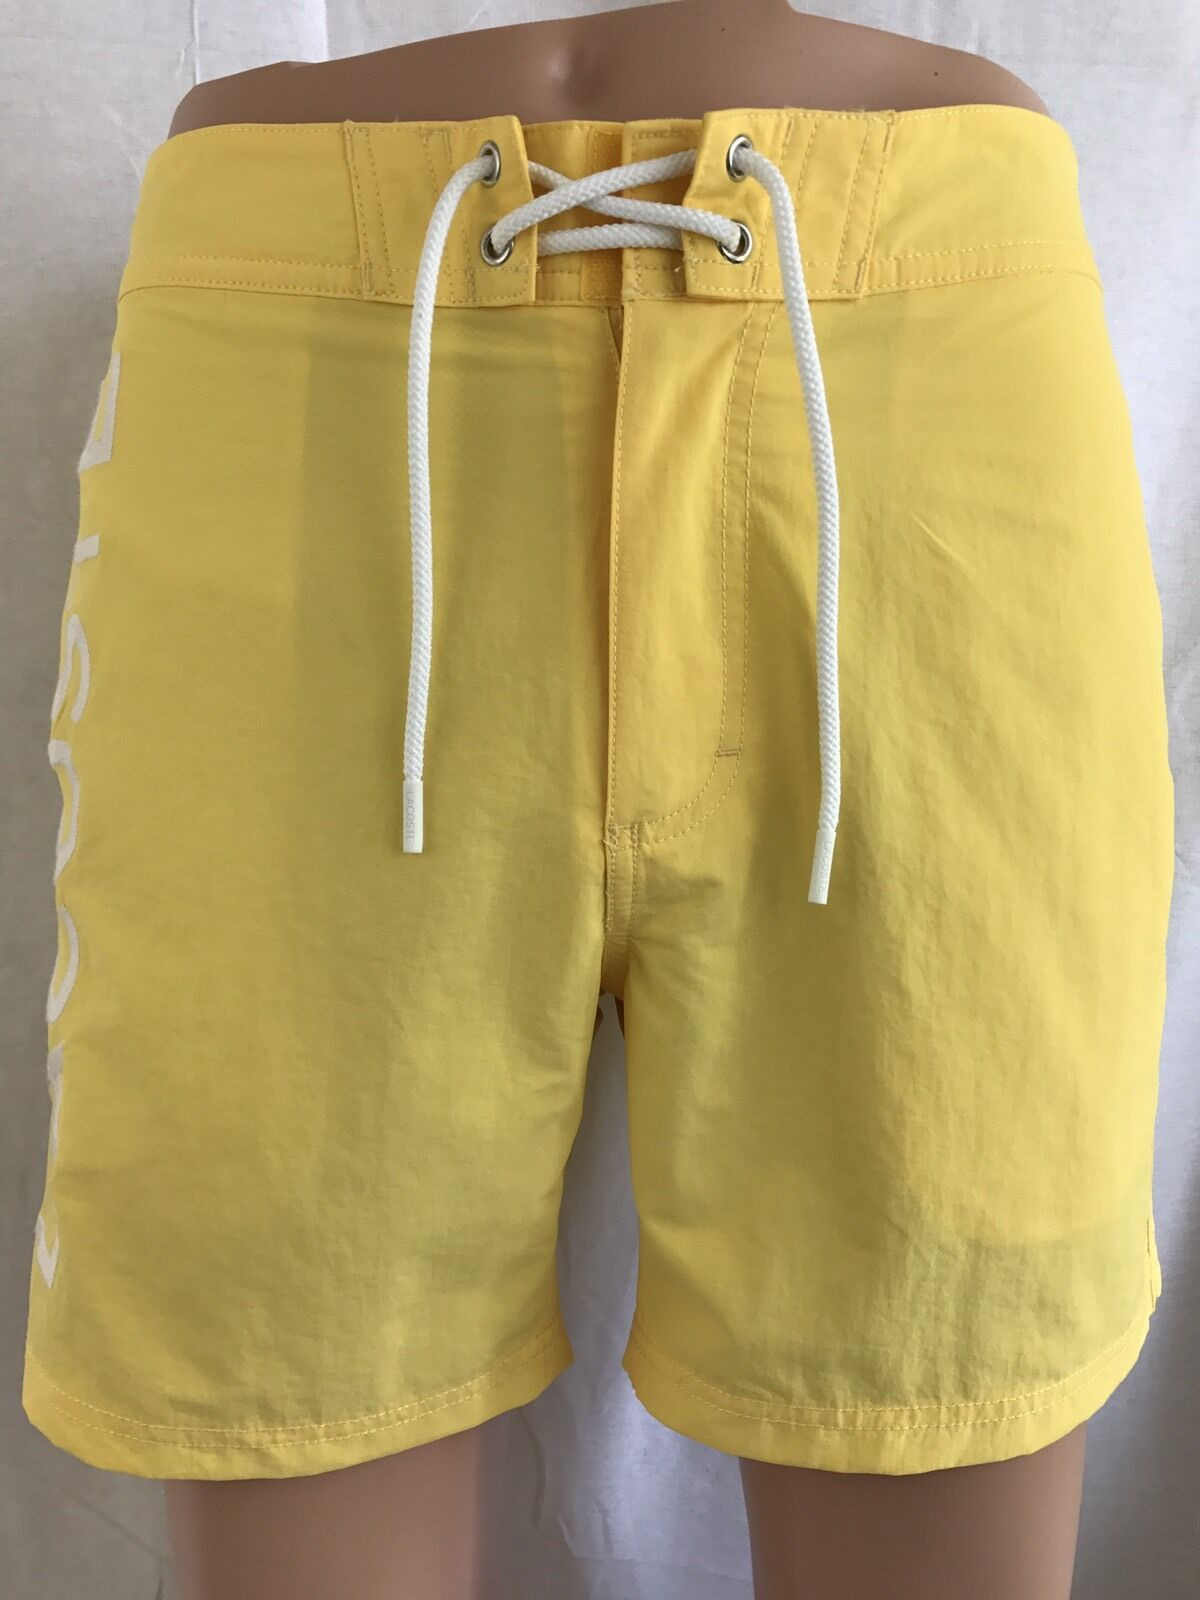 New Lacoste Mens Premium Surf Swim Trunks Board Shorts, Yellow Logo, Size L